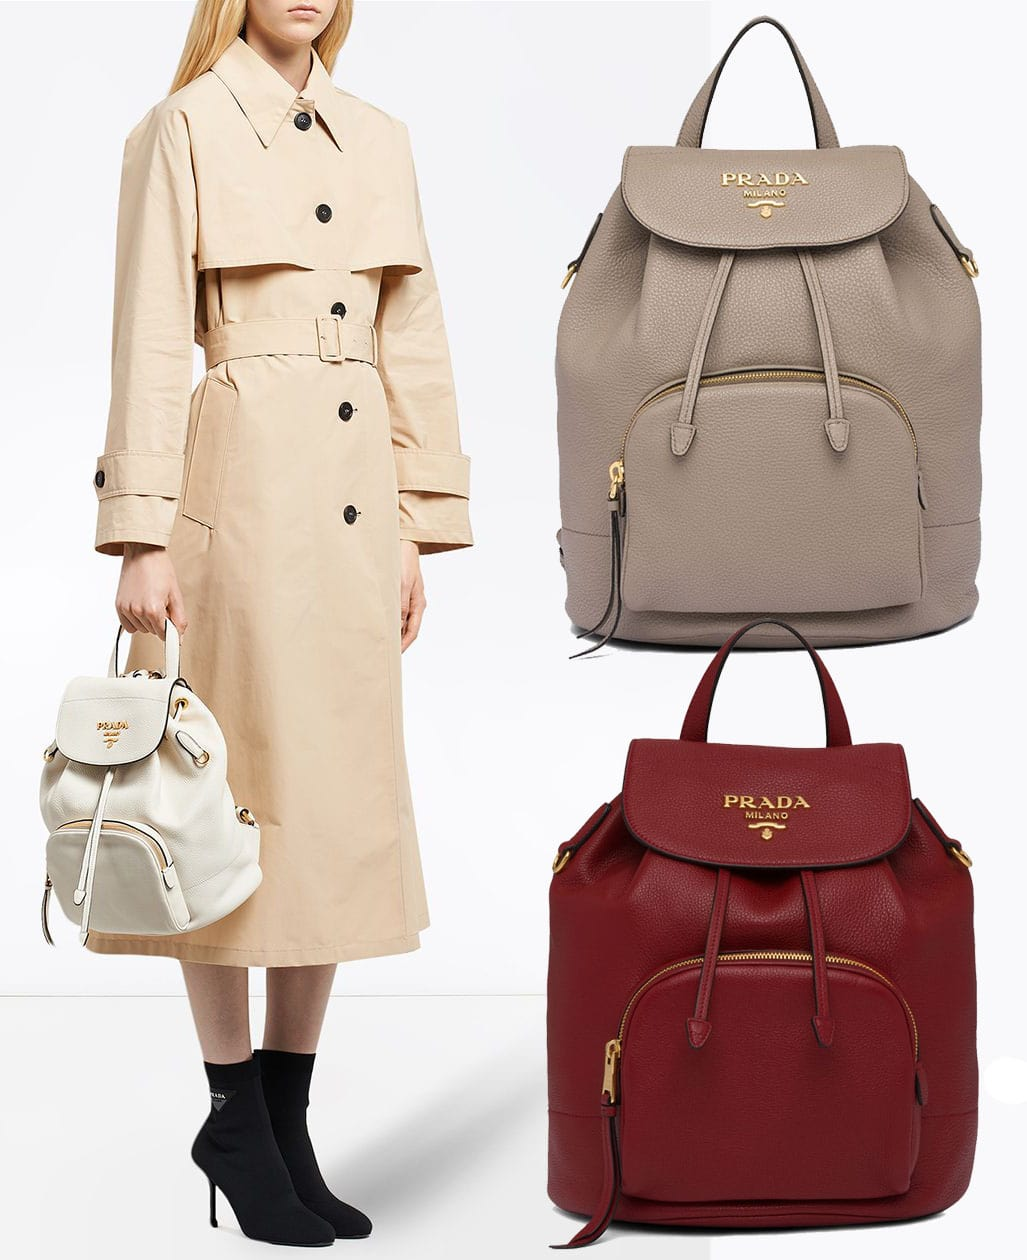 Prada also offers minimalist and timeless leather backpacks